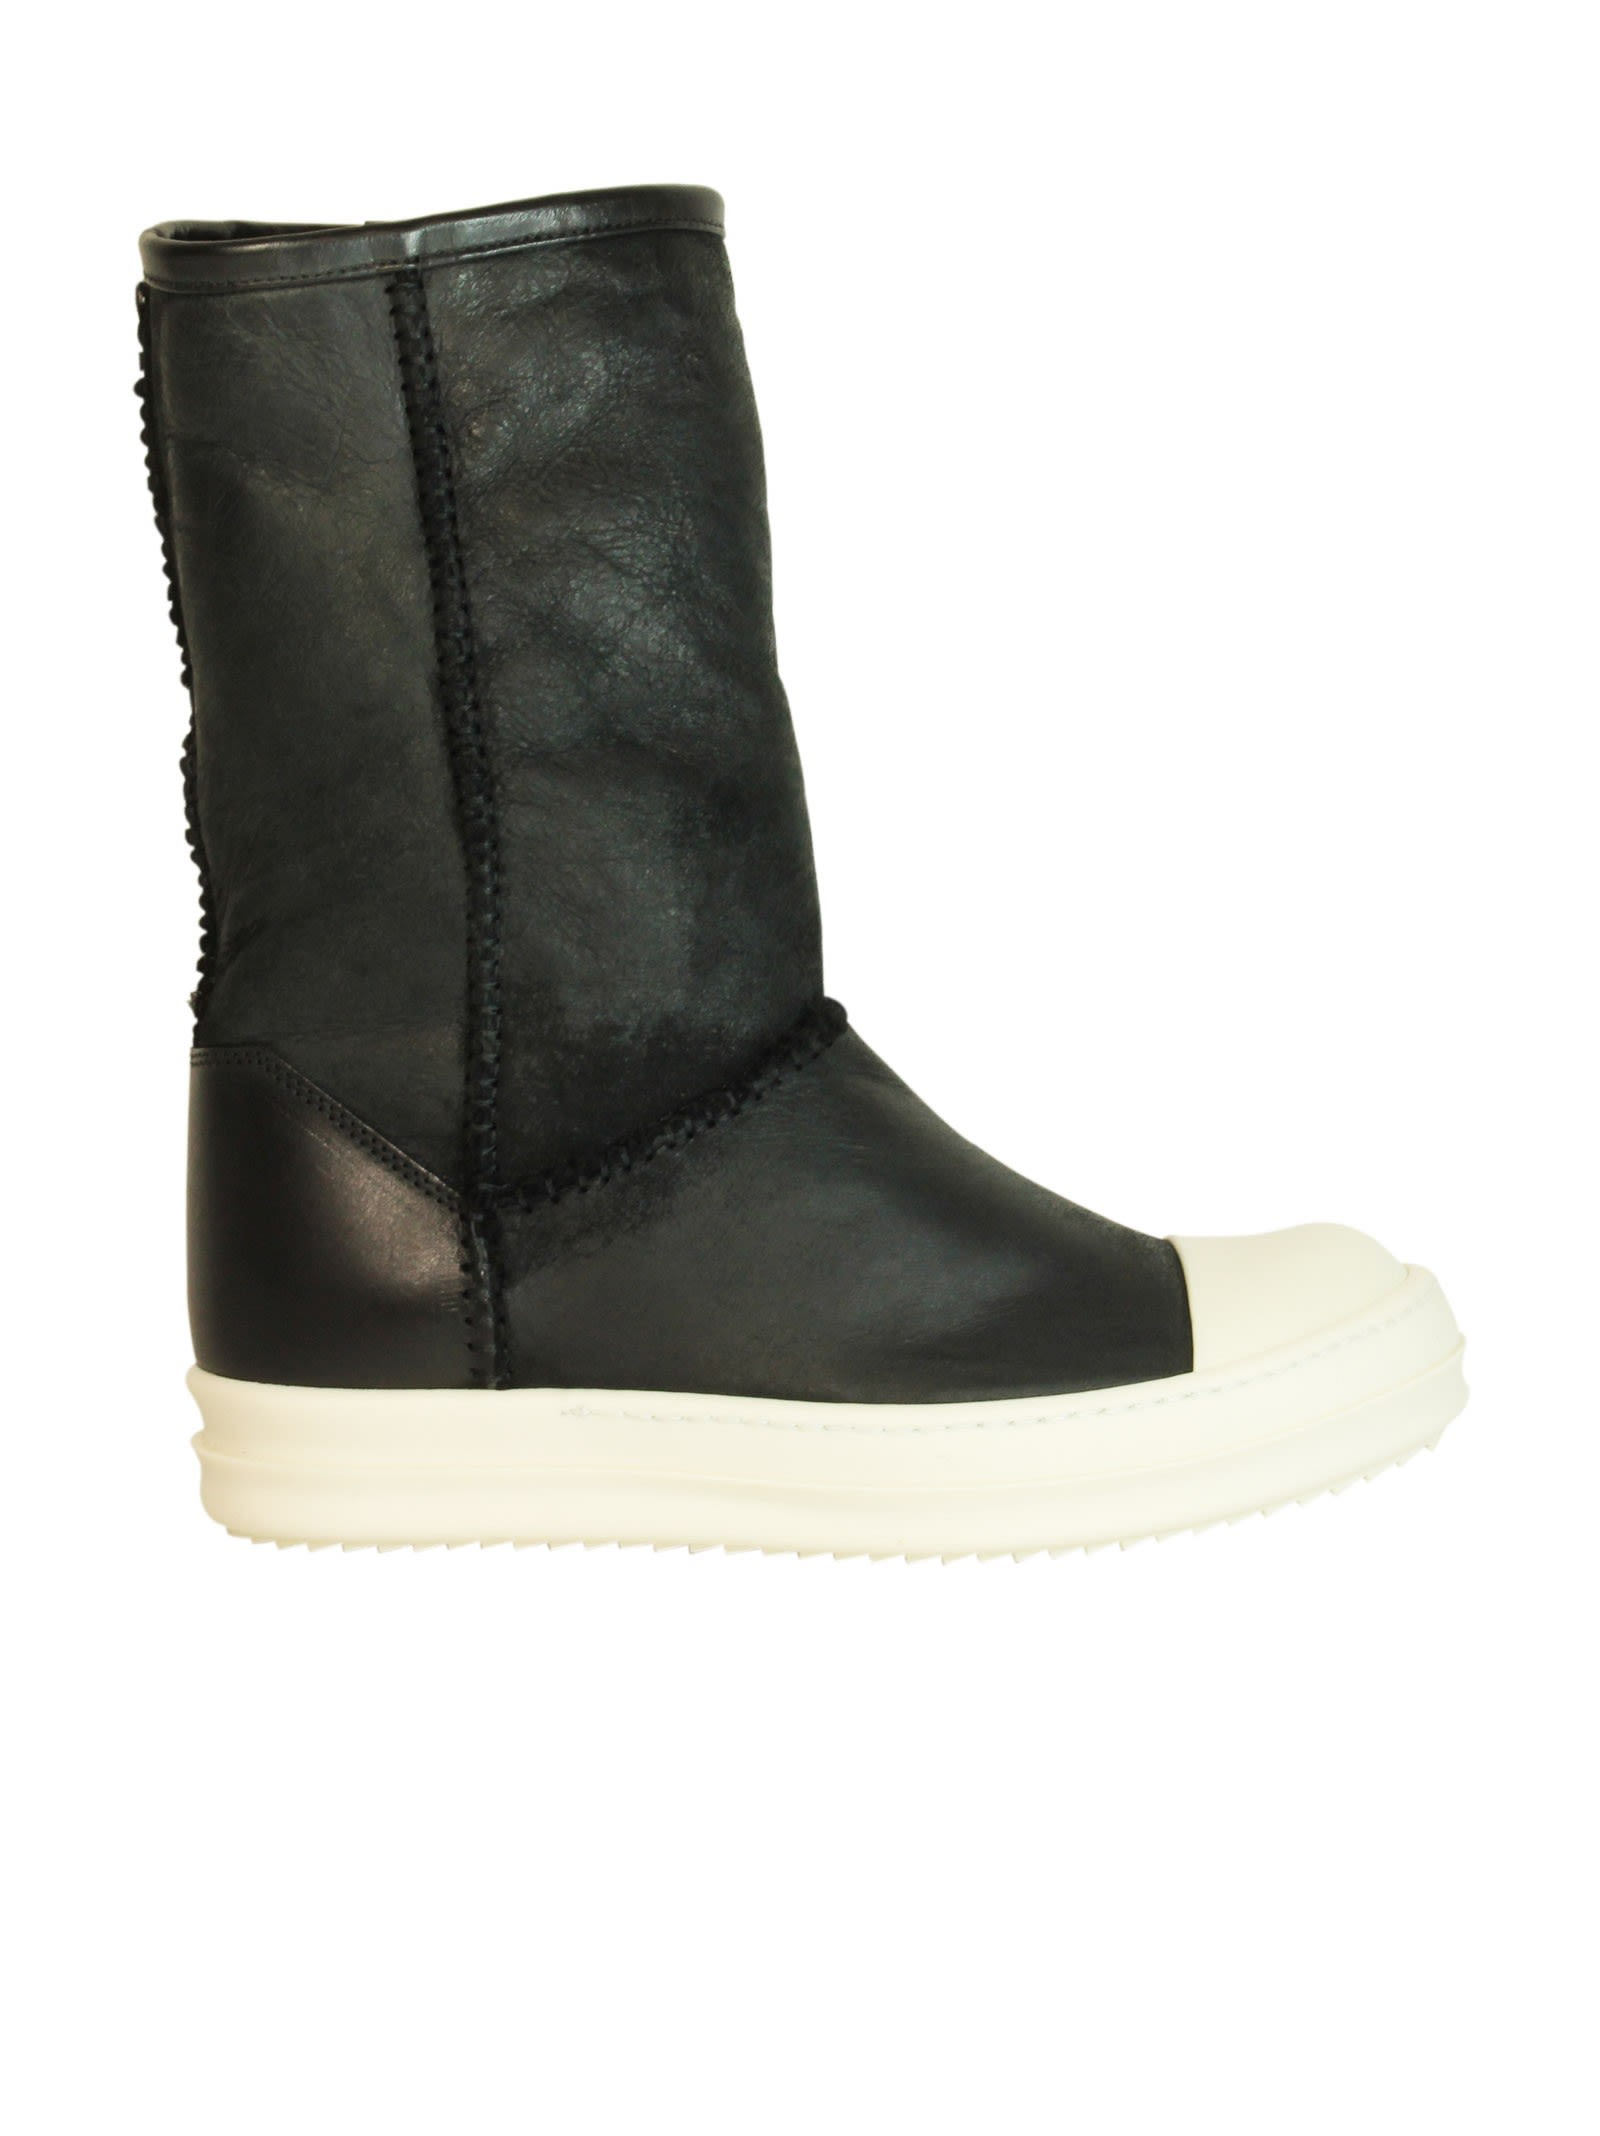 Black Shearling Ankle Boots